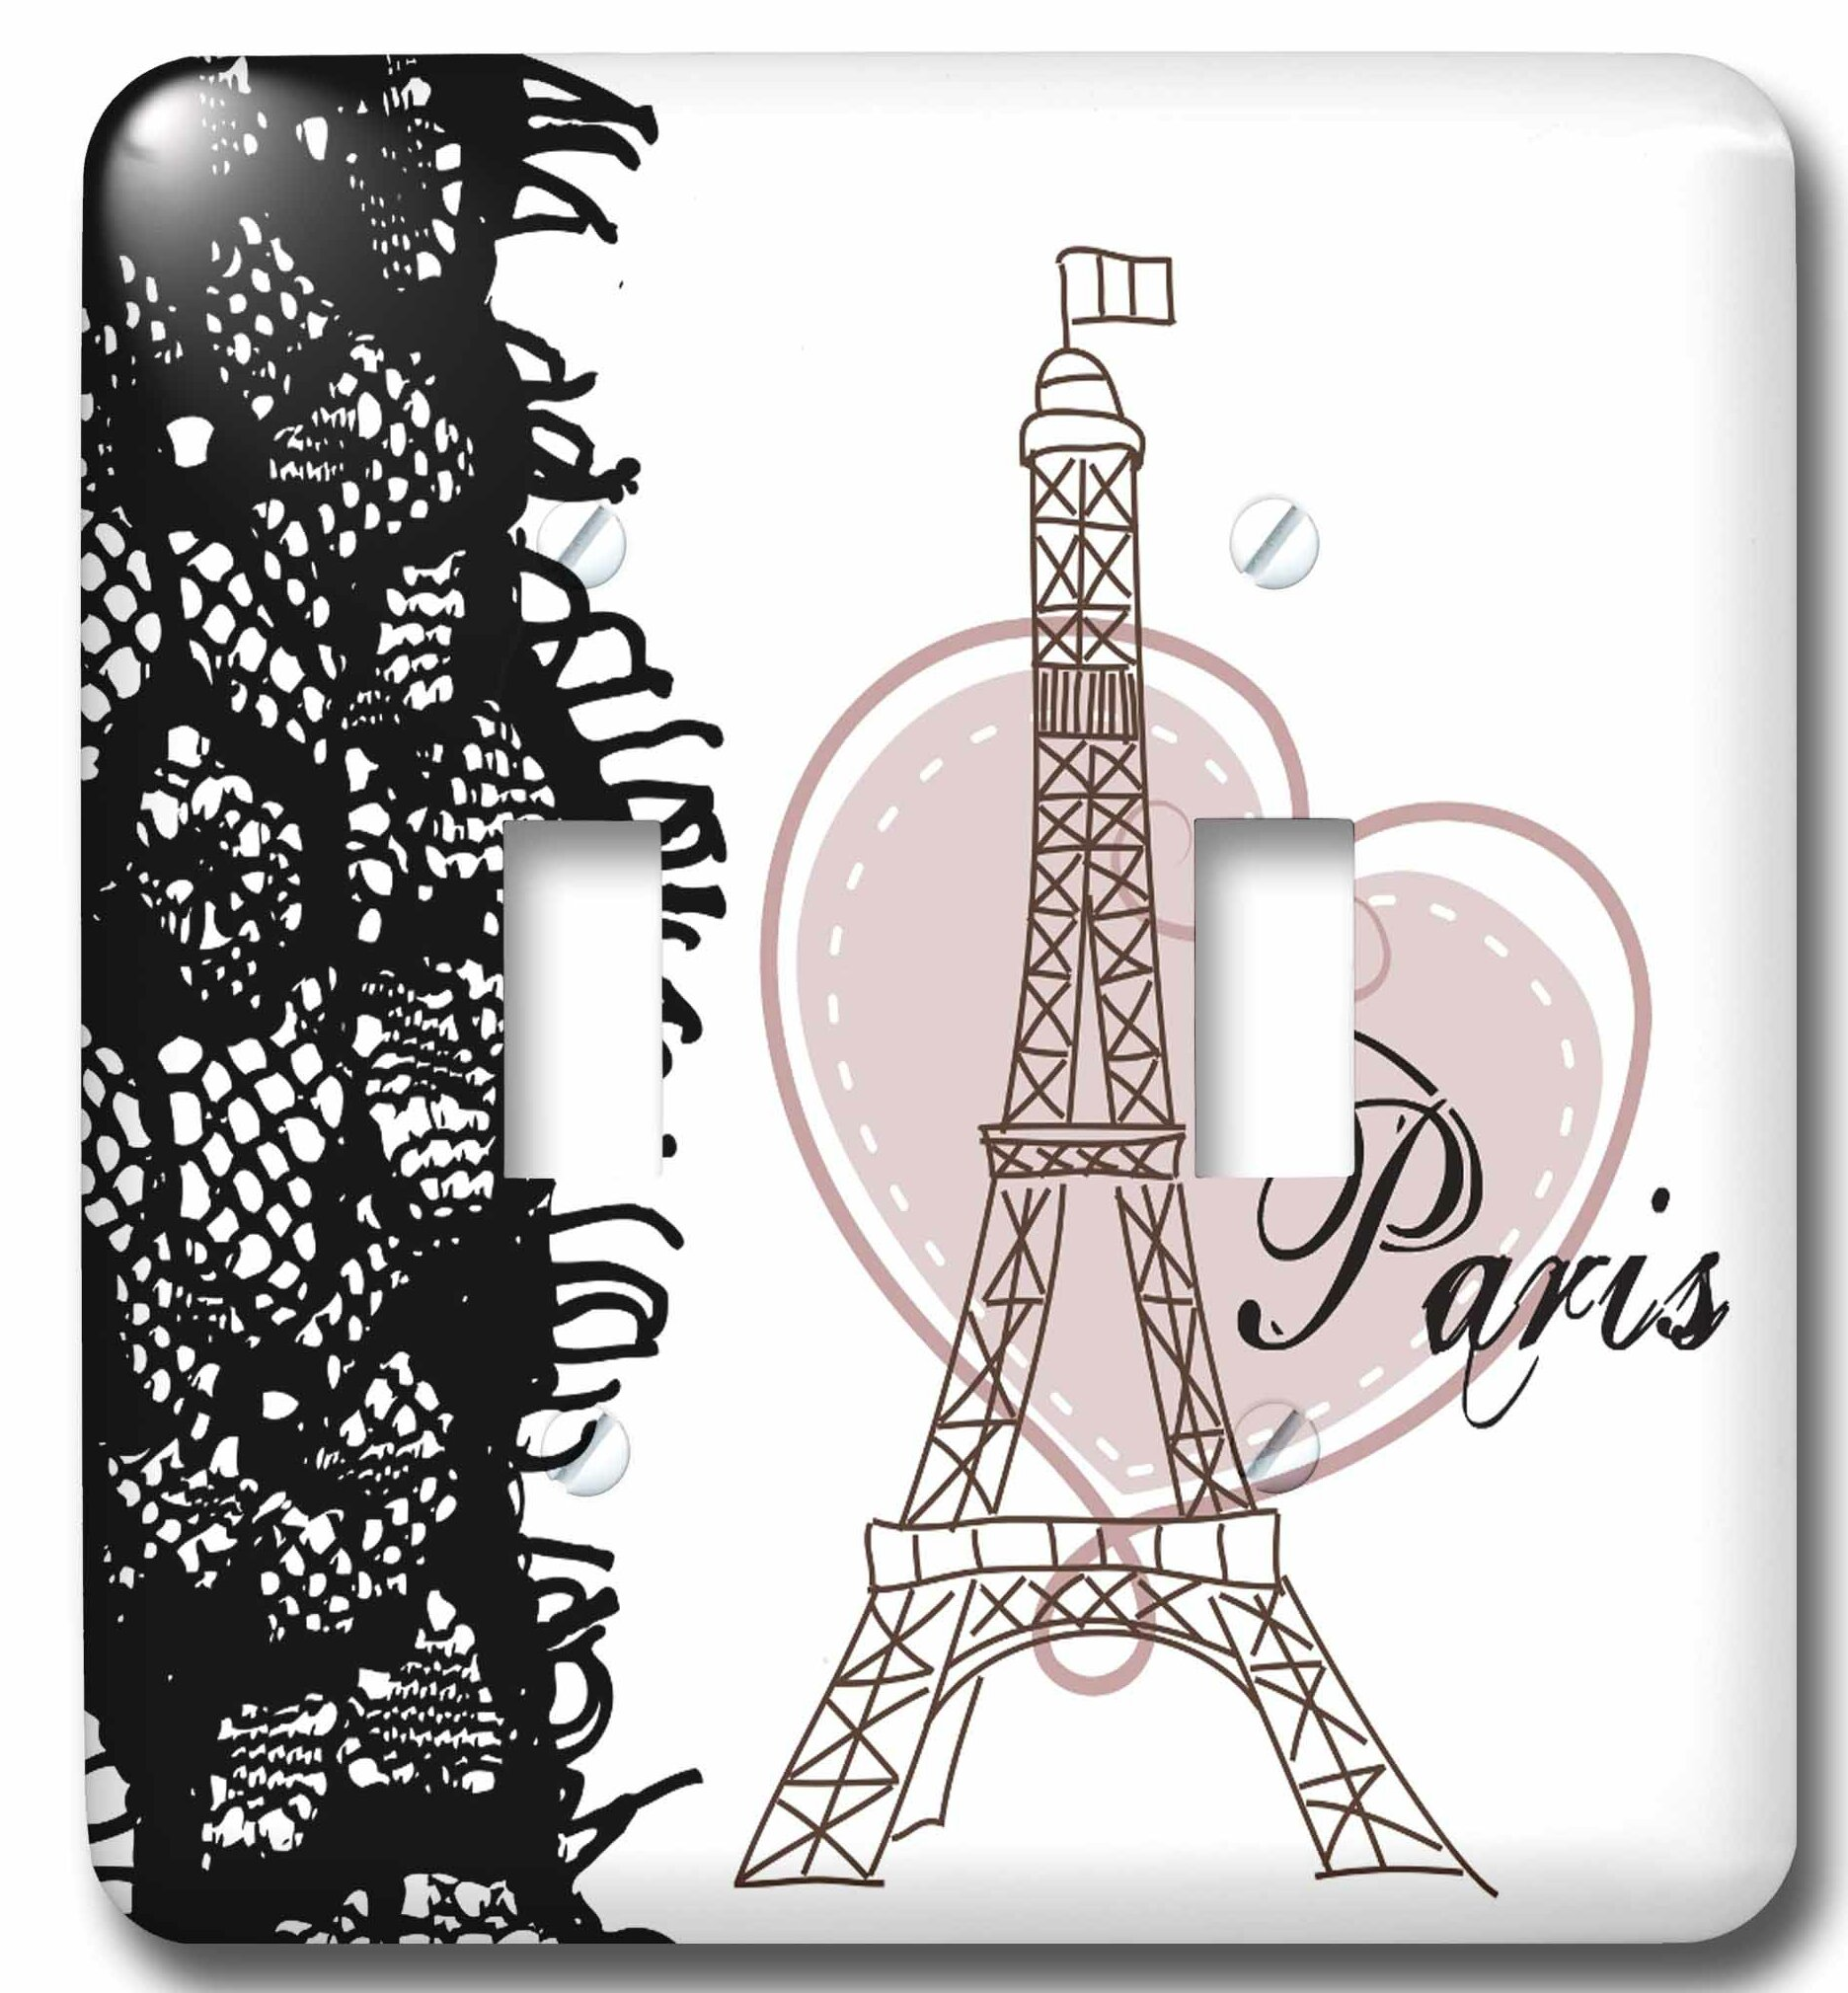 3drose Paris Eiffel Tower With Heart And Lace 2 Gang Toggle Light Switch Wall Plate Wayfair